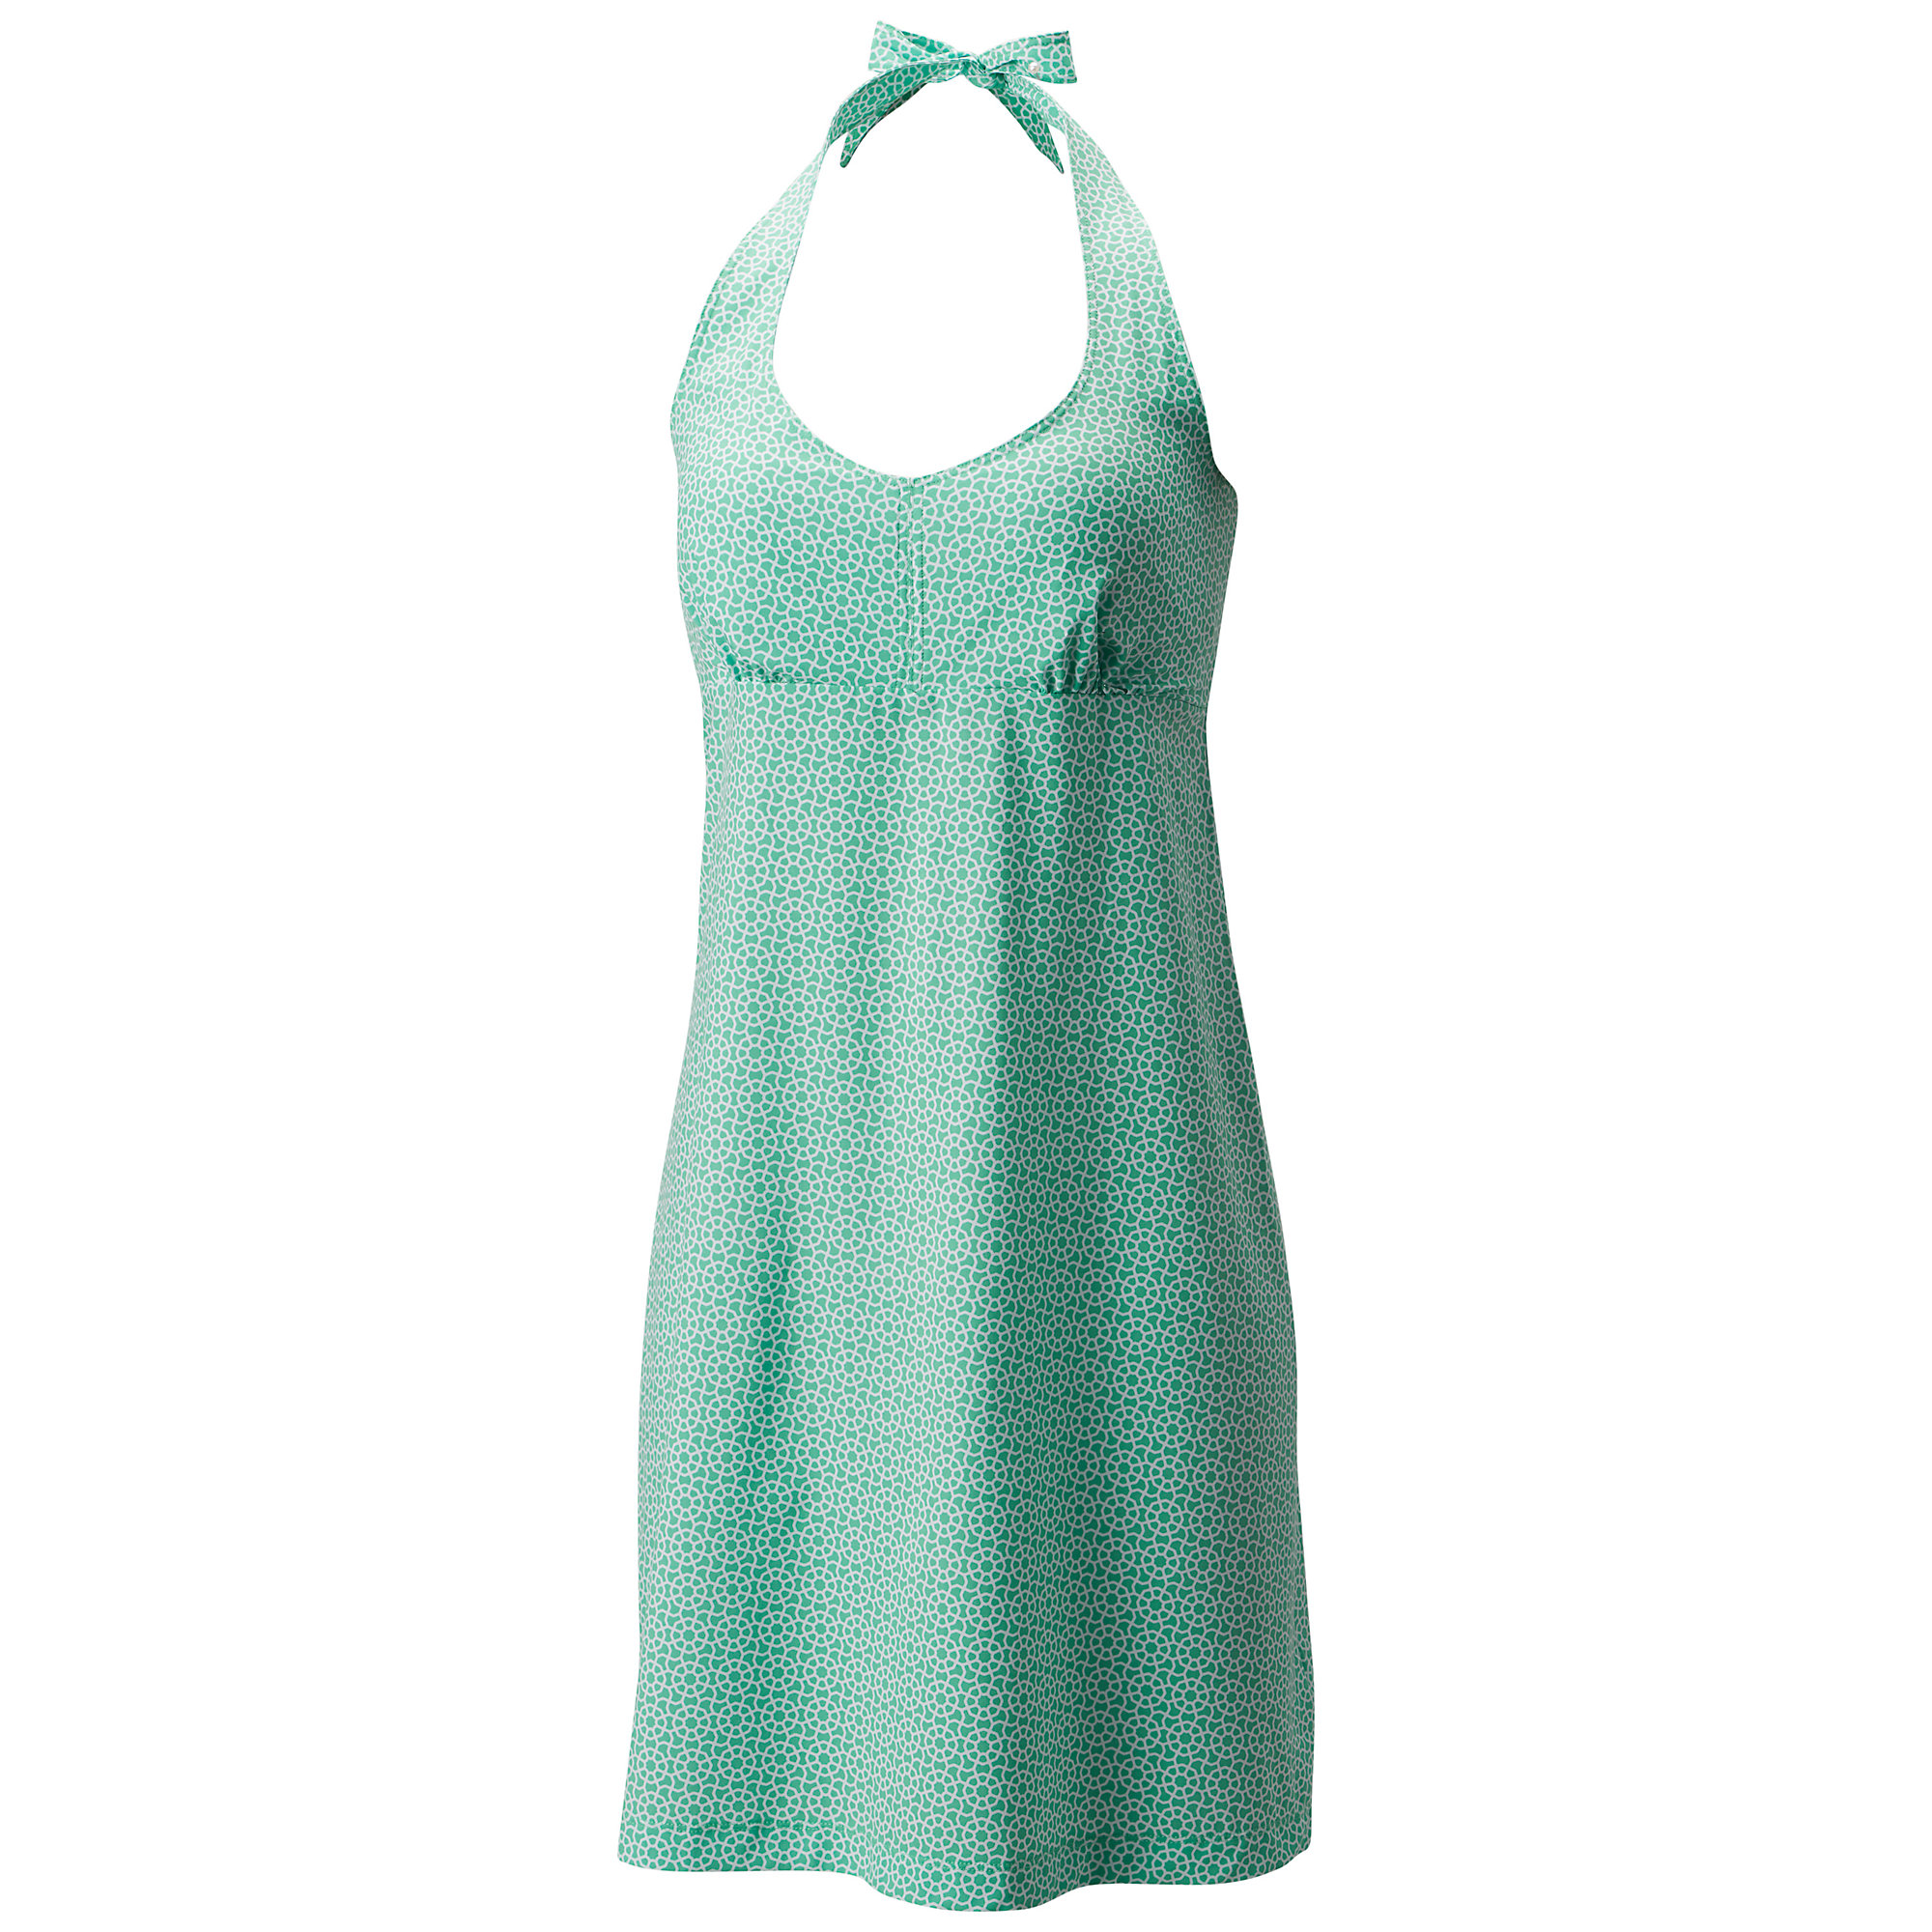 Columbia PFG Armadale Halter Top Dress